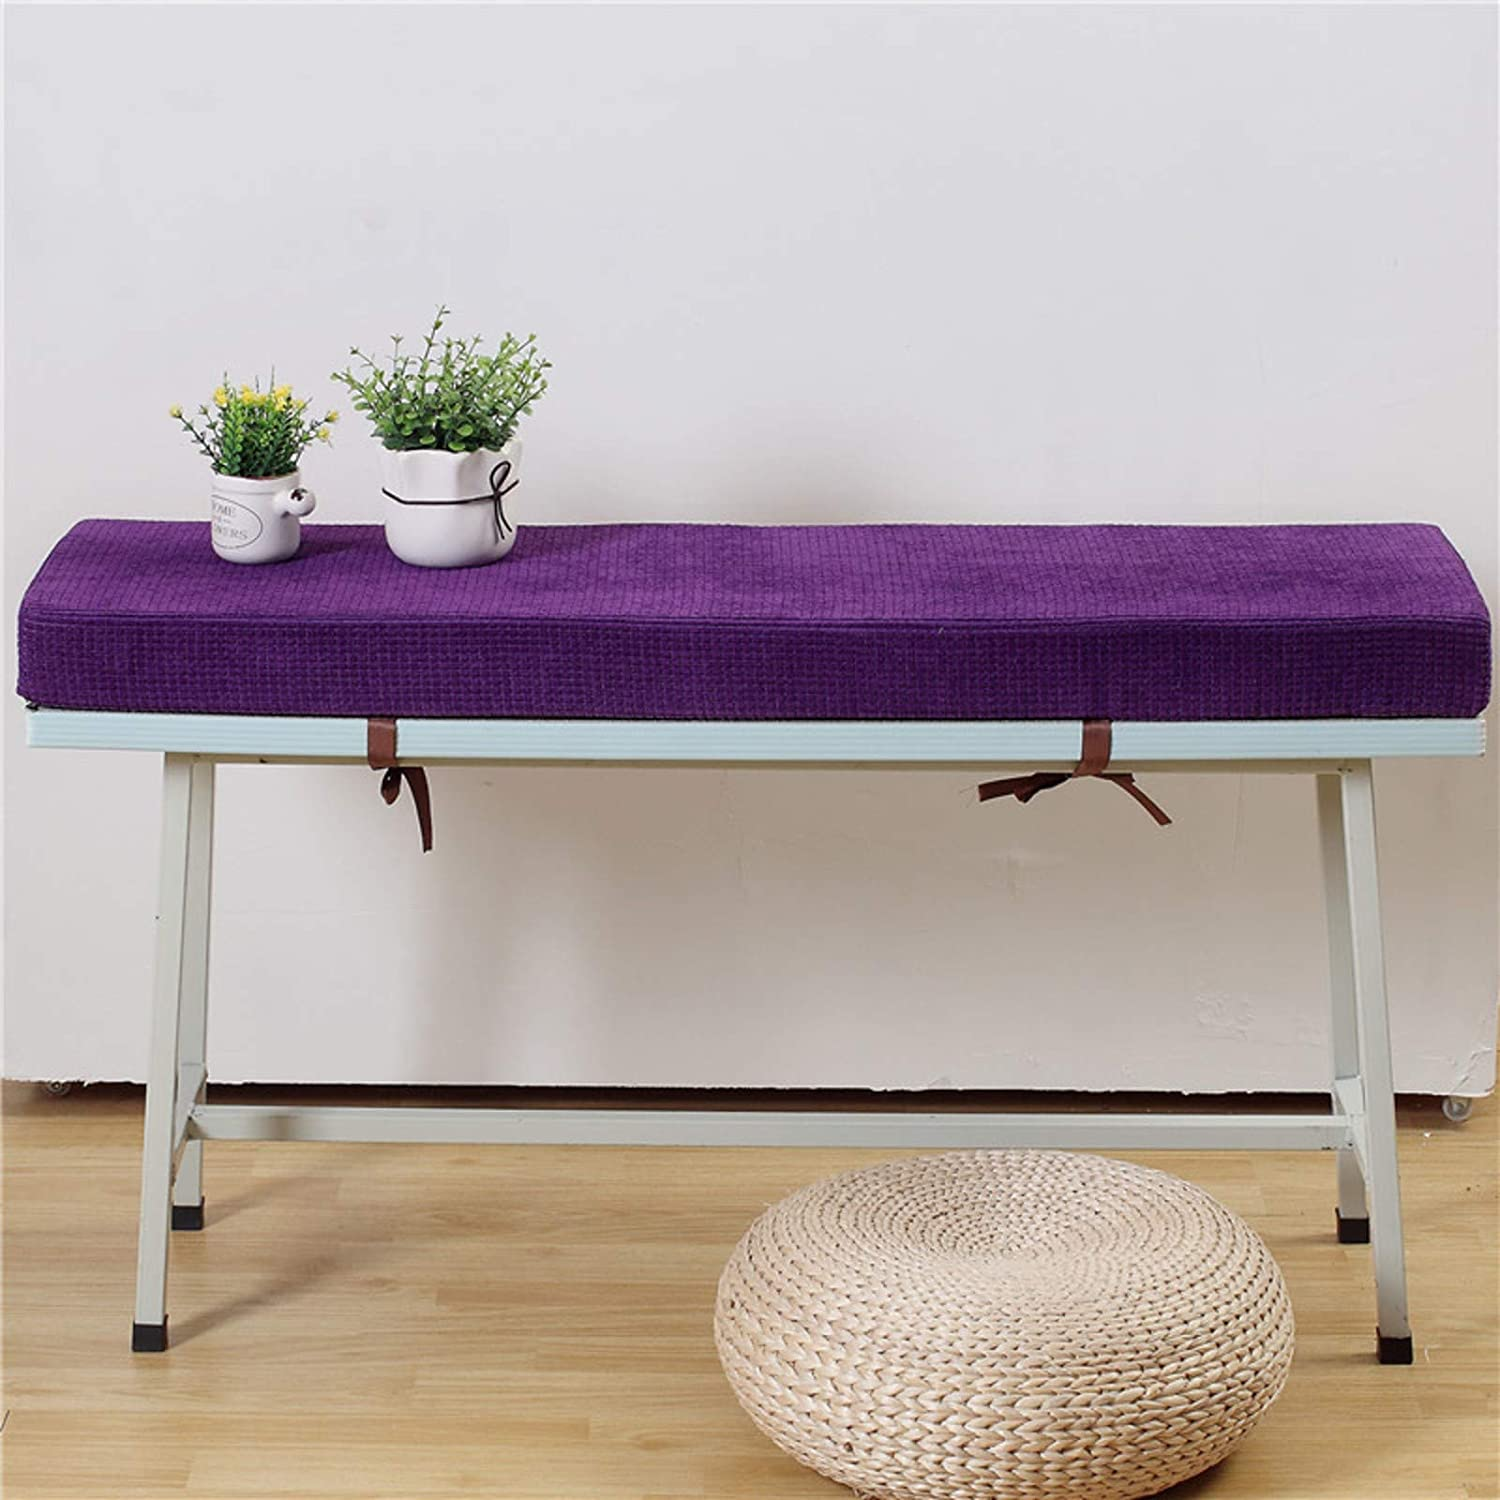 Solid Color Foam Sofa Chair Pads Cus 在庫限り 人気の定番 Thicken Padded Sponge Bench